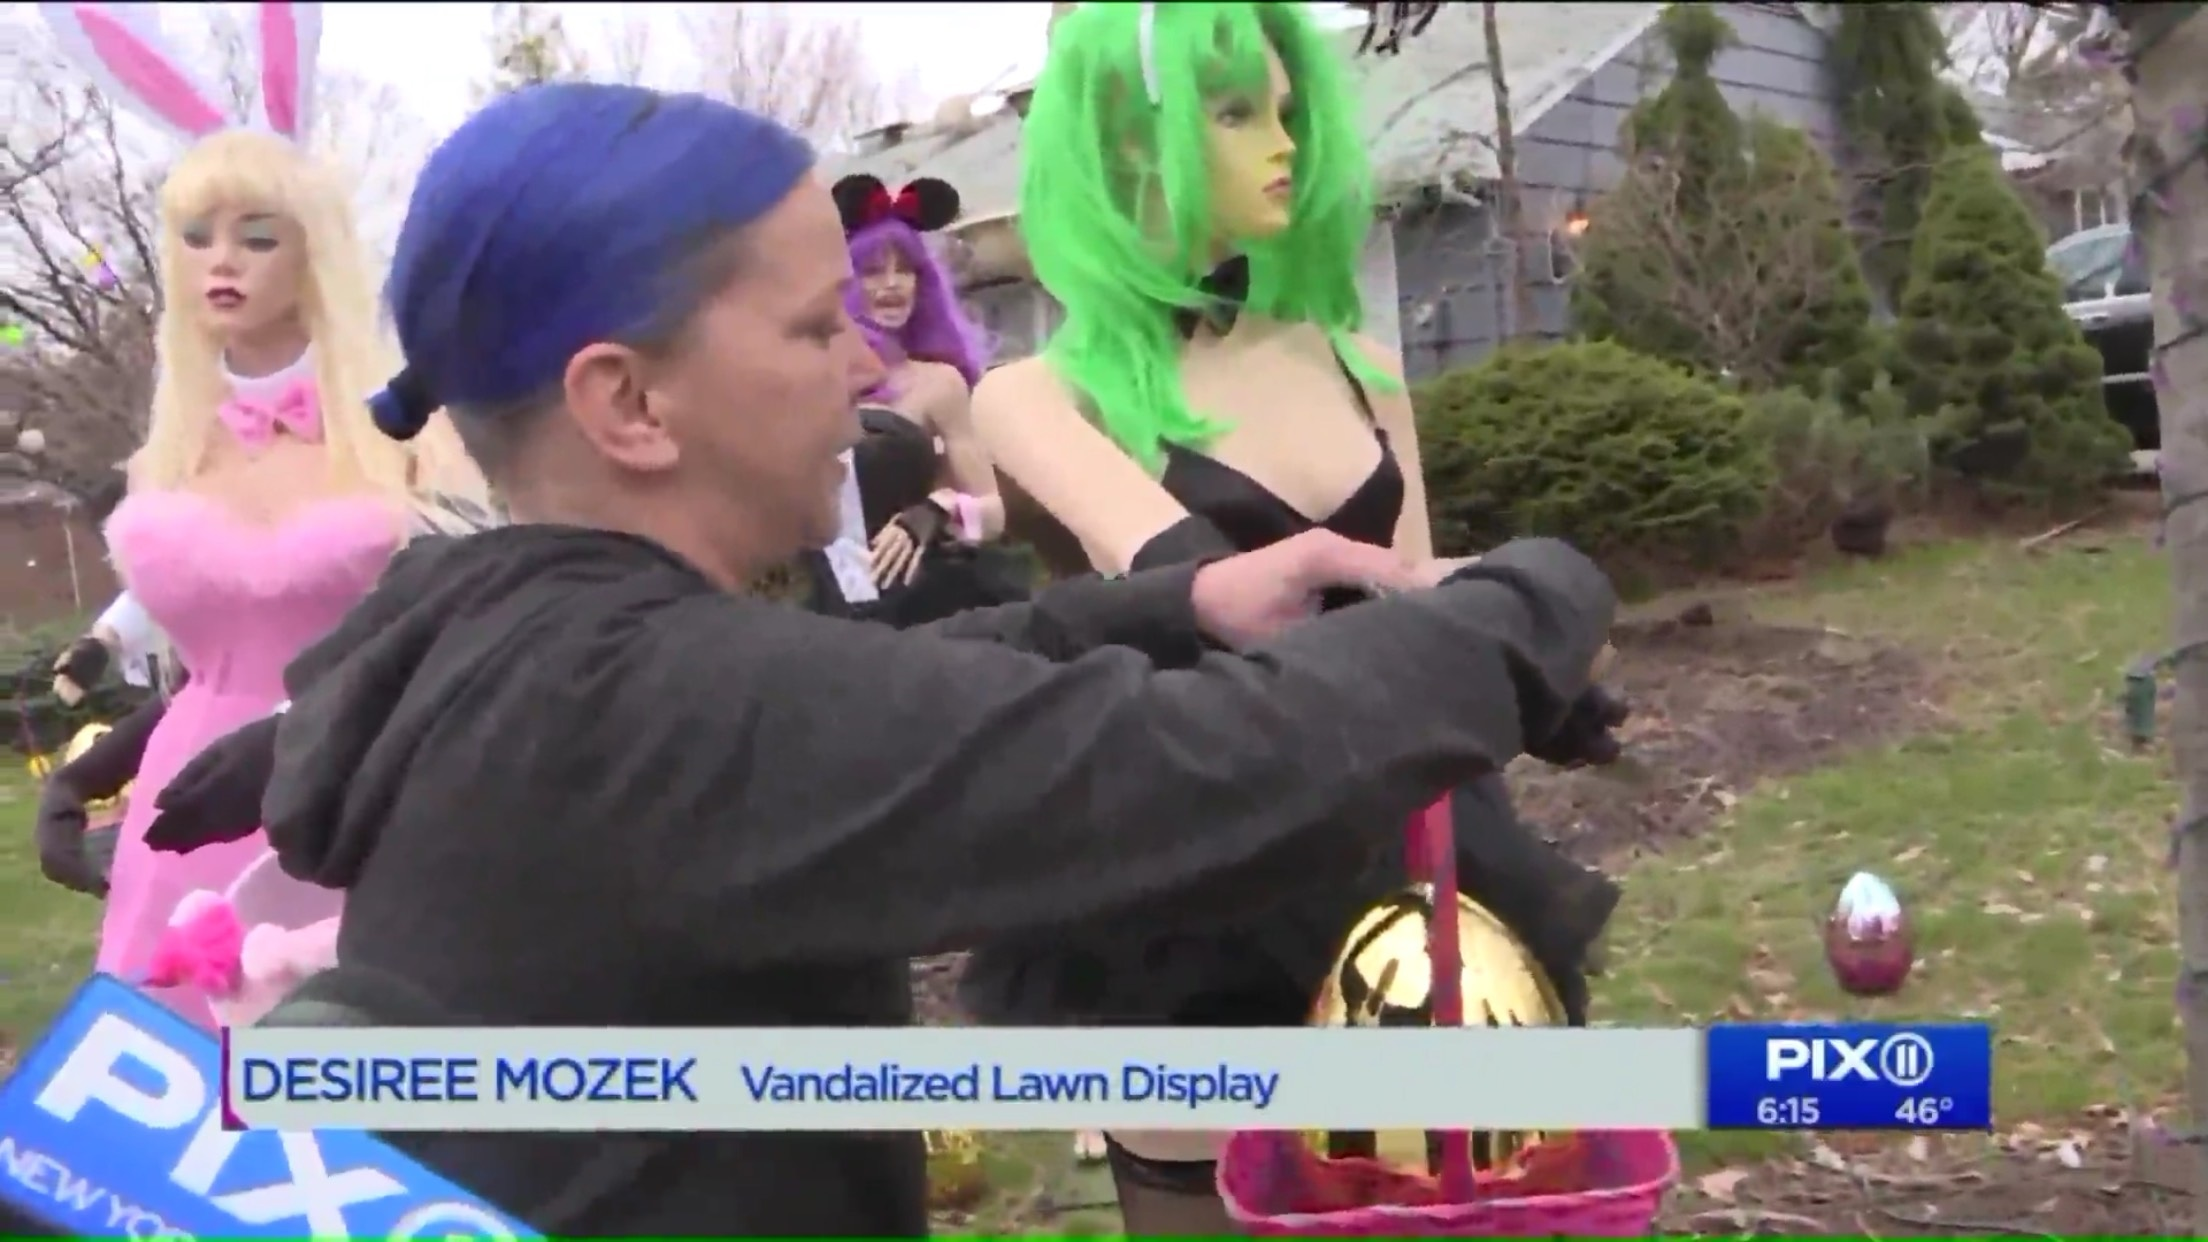 Desiree Mozek: Vandalized Lawn Display. (The display is female mannequins in lingerie.)